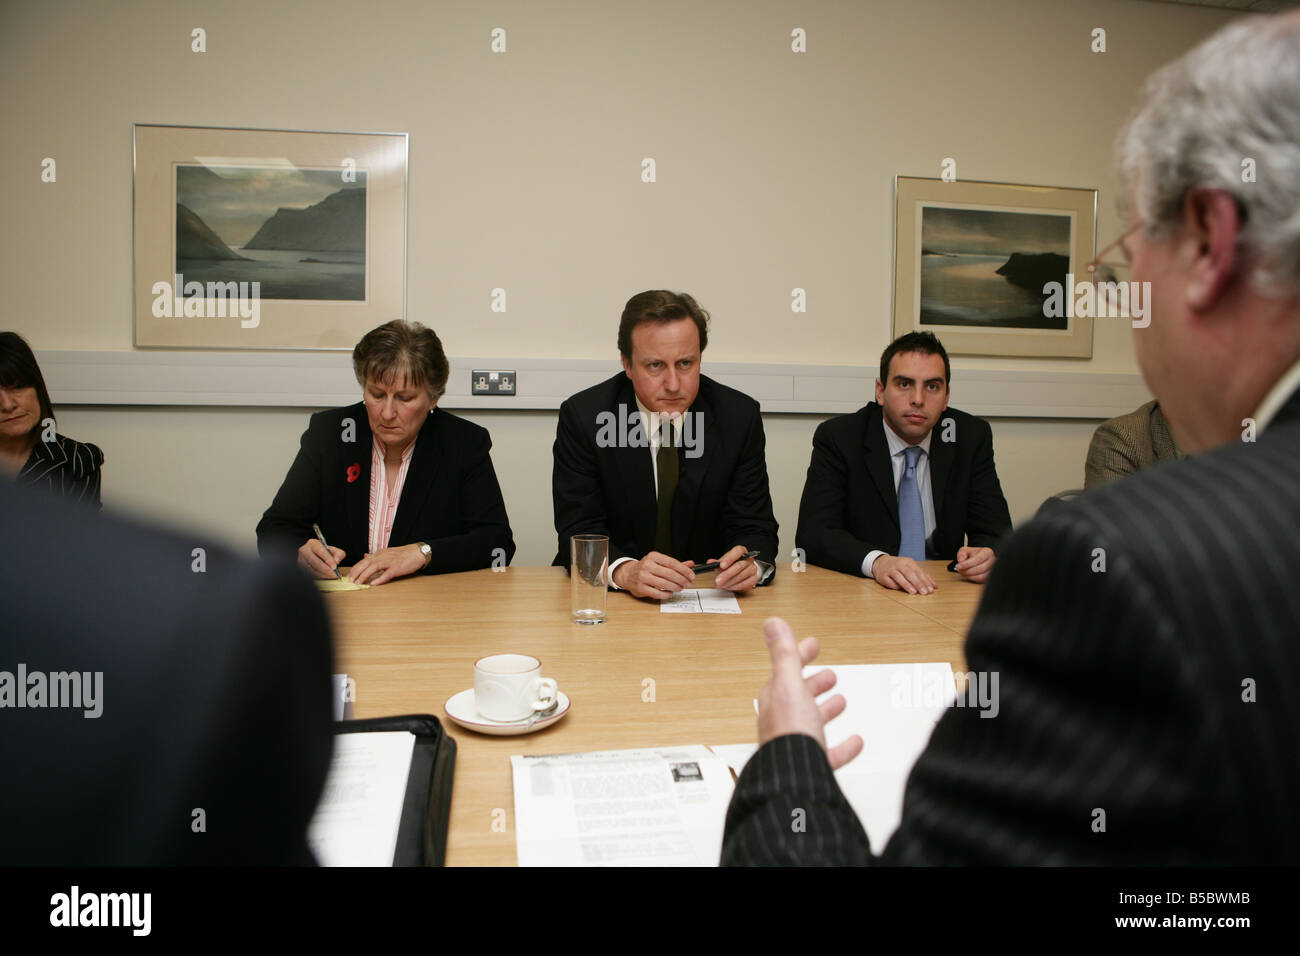 David Cameron meeting local business leaders at Rothes Halls during the Glenrothes by-election with Annabel Goldie - Stock Image